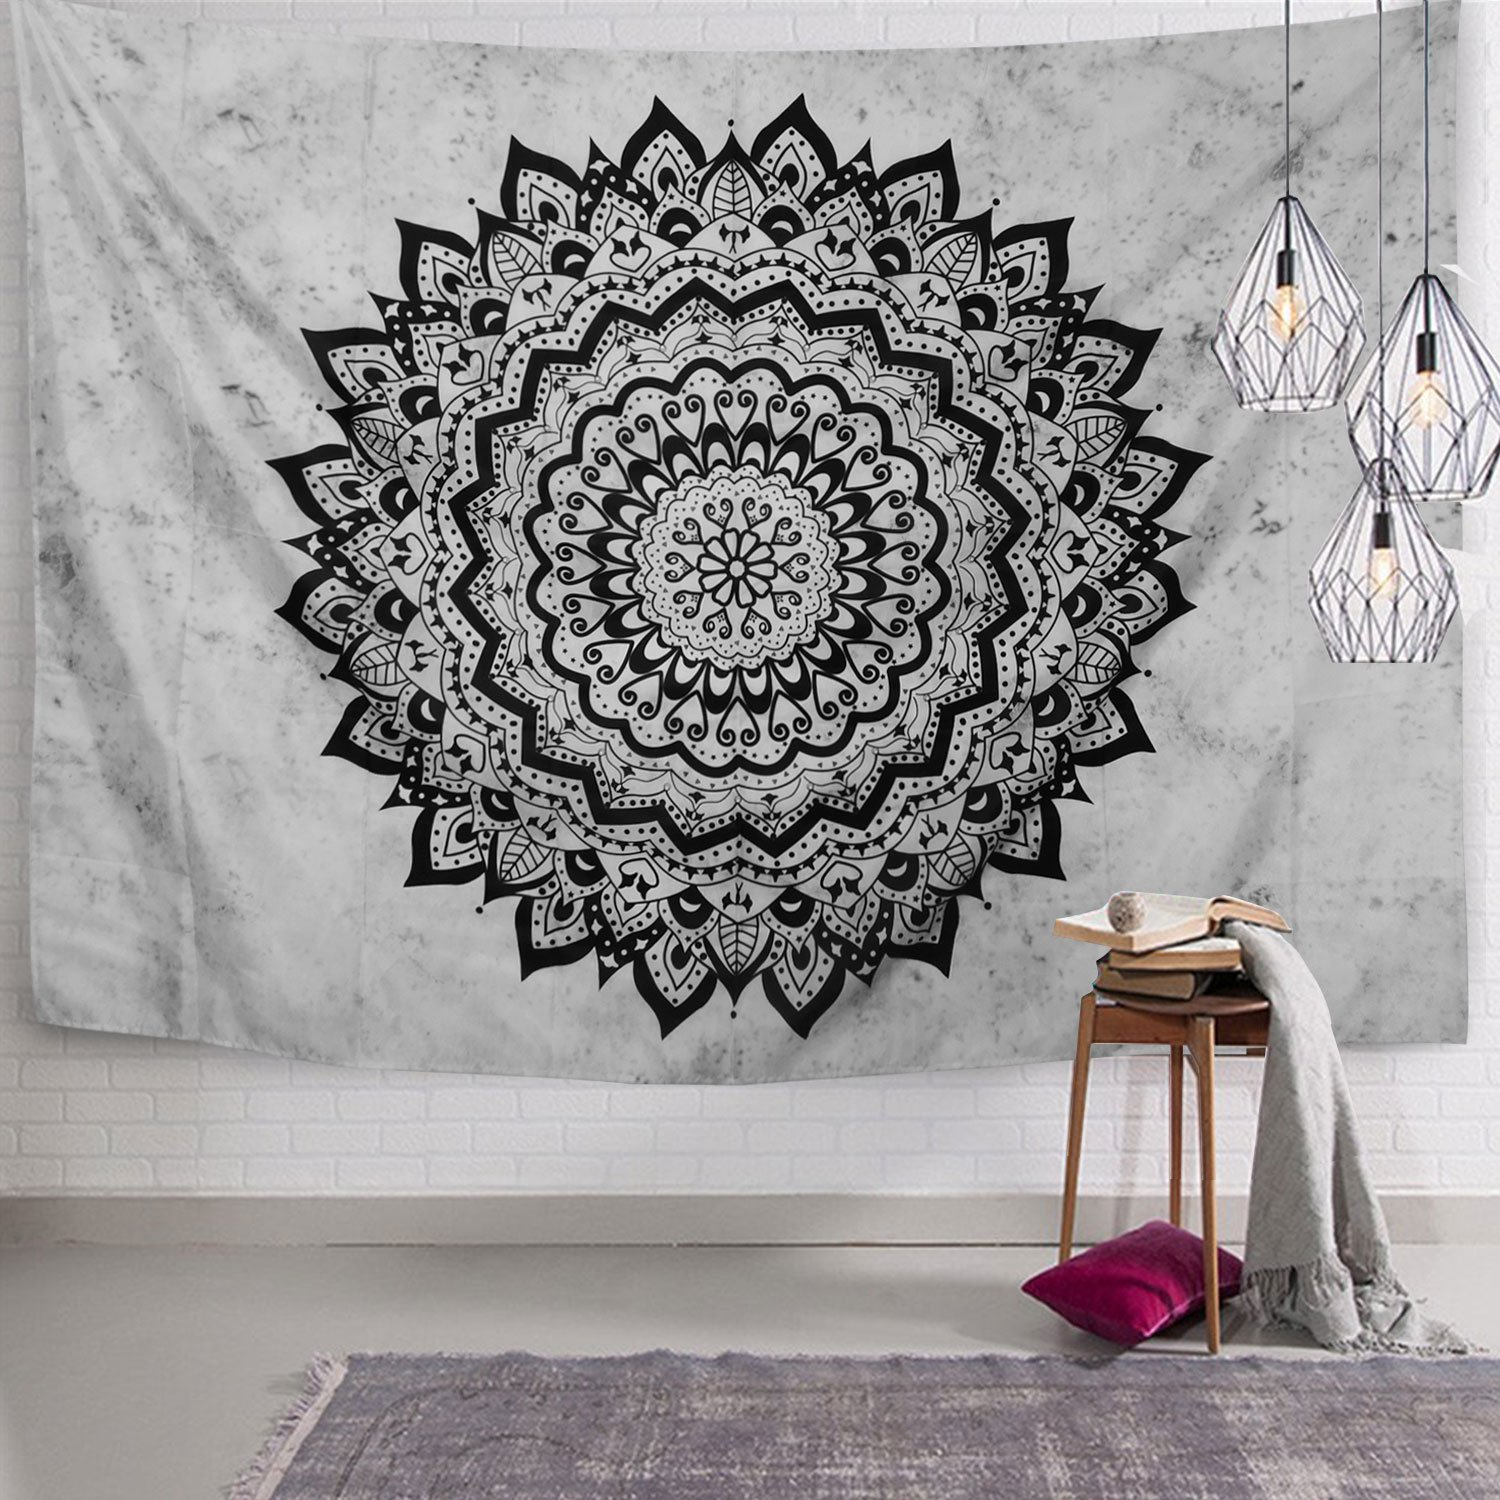 Sunm boutique SENGE Indian Mandala Tapestry Wall Hanging Hippie Bohemian Flower Psychedelic Tapestries Home Decor